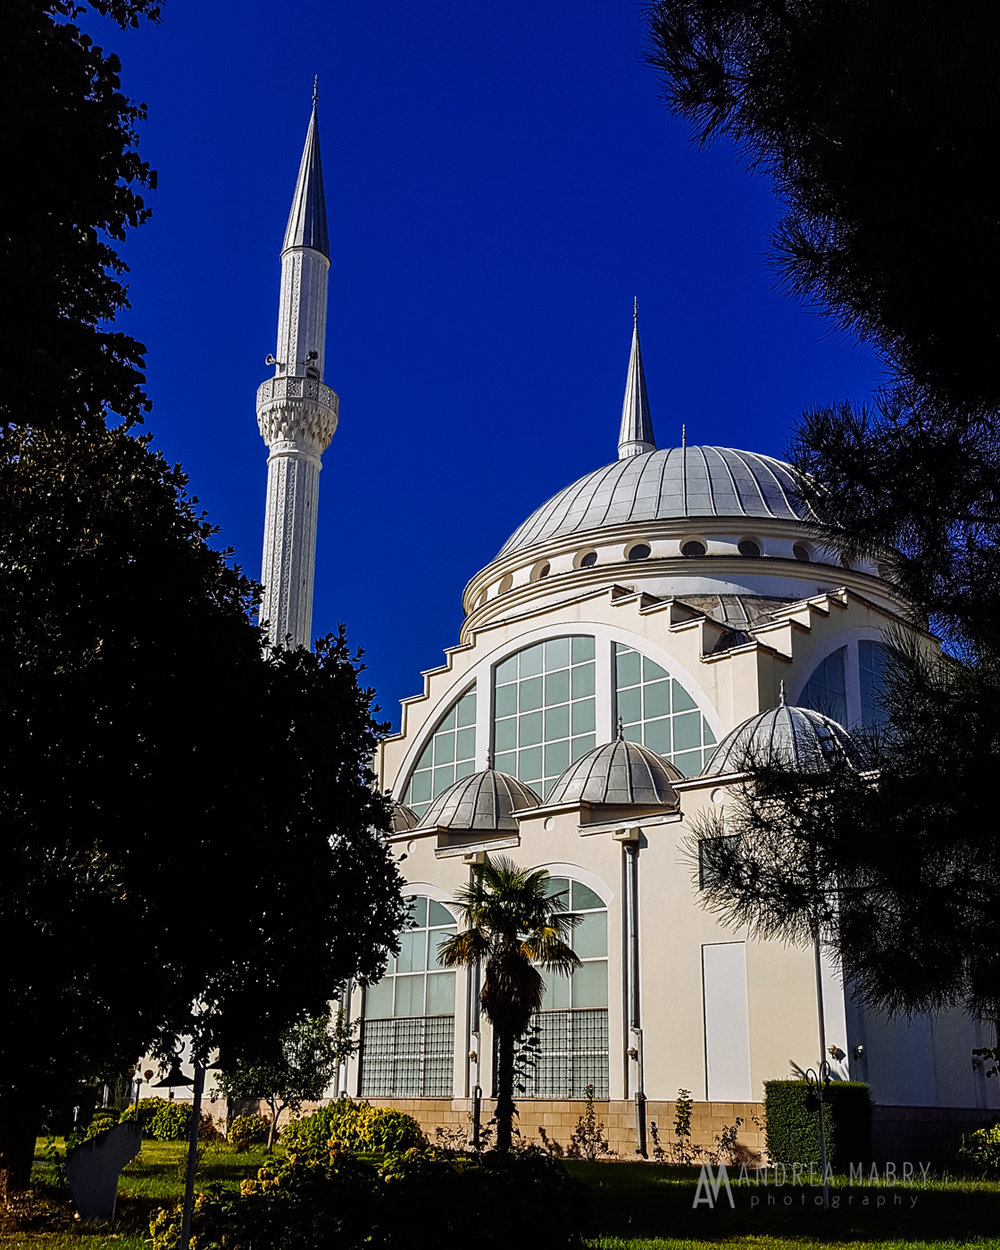 Though the Communist regime banned religion, the majority of Albanians are Muslim. Every city we visited had a mosque.